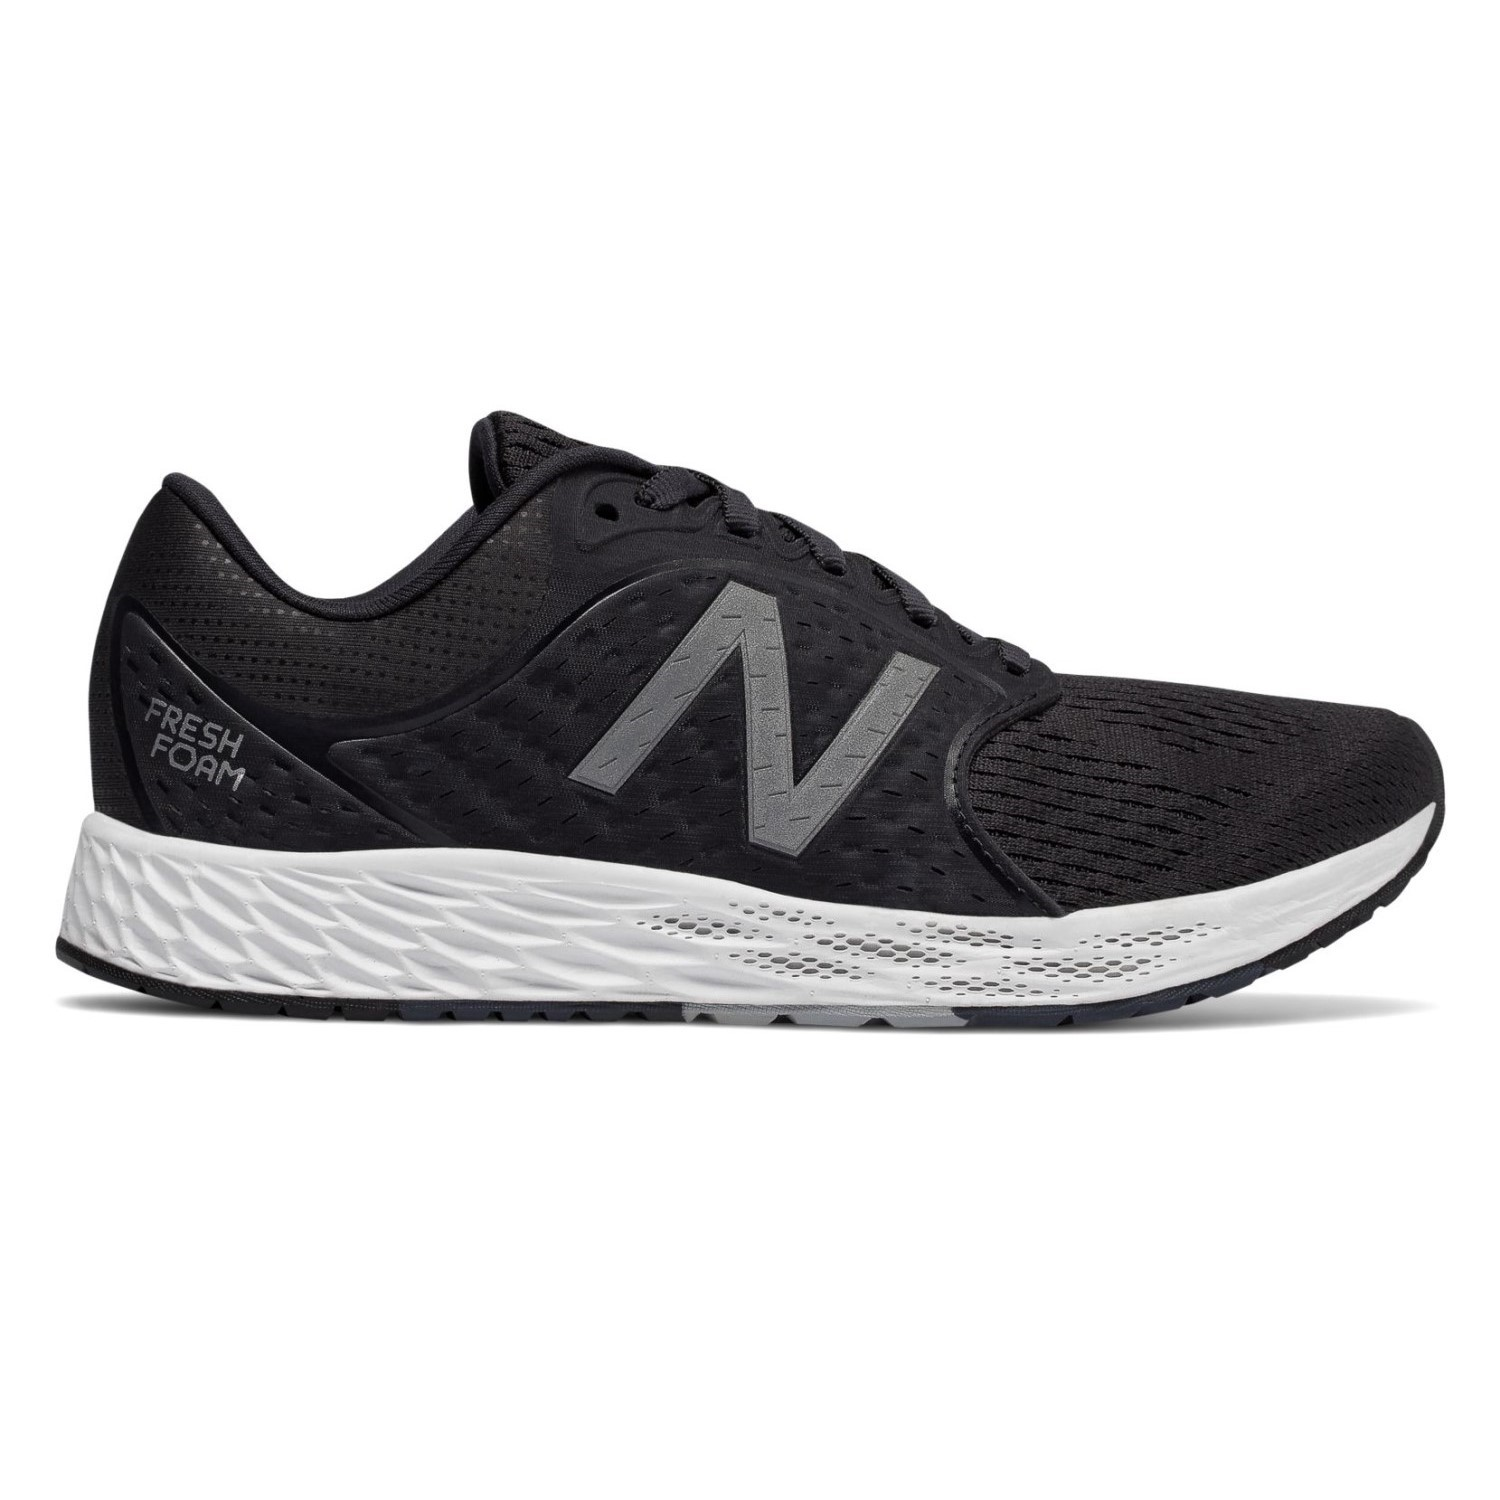 dfcafeb478fc3 New Balance Fresh Foam Zante V4 - Womens Running Shoes - Black Phantom  Silver